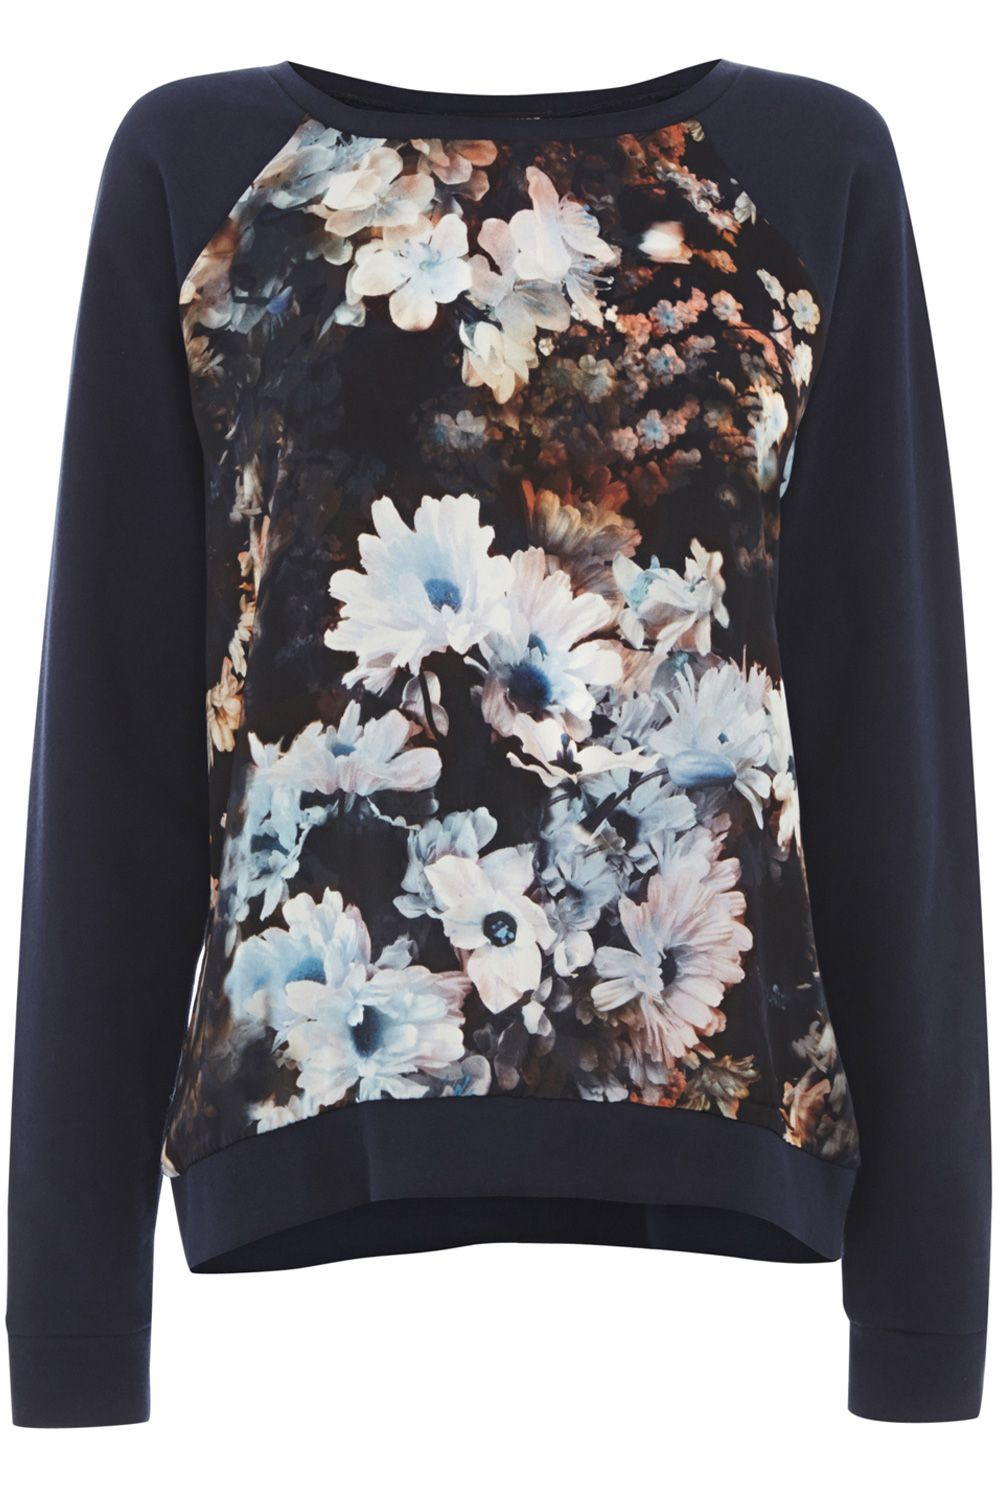 Smudgy floral print sweater